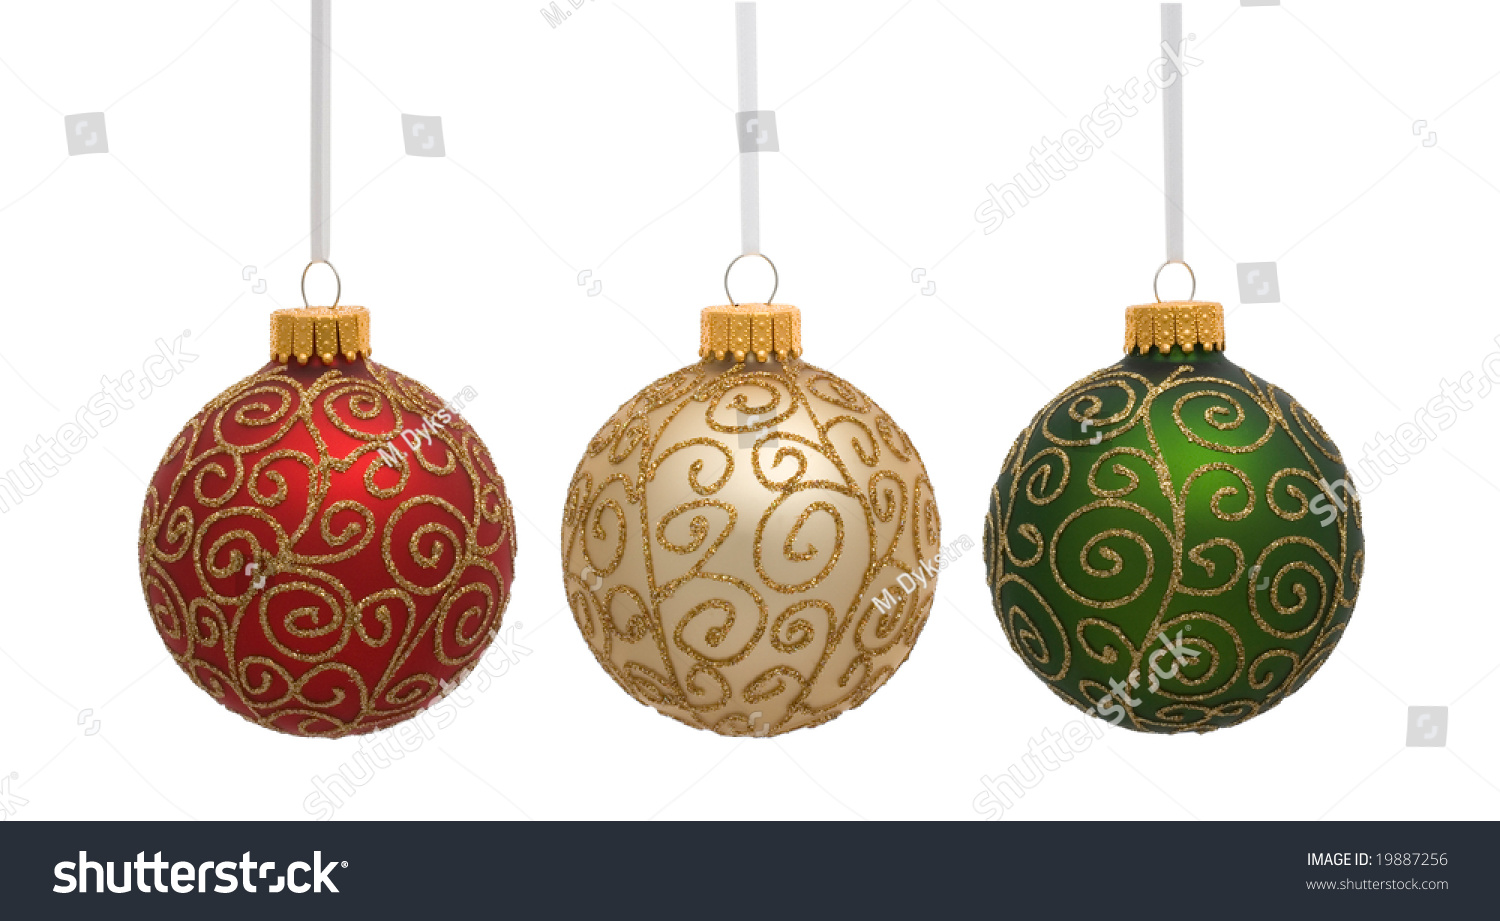 red gold and green christmas ornaments on white - White And Gold Christmas Ornaments